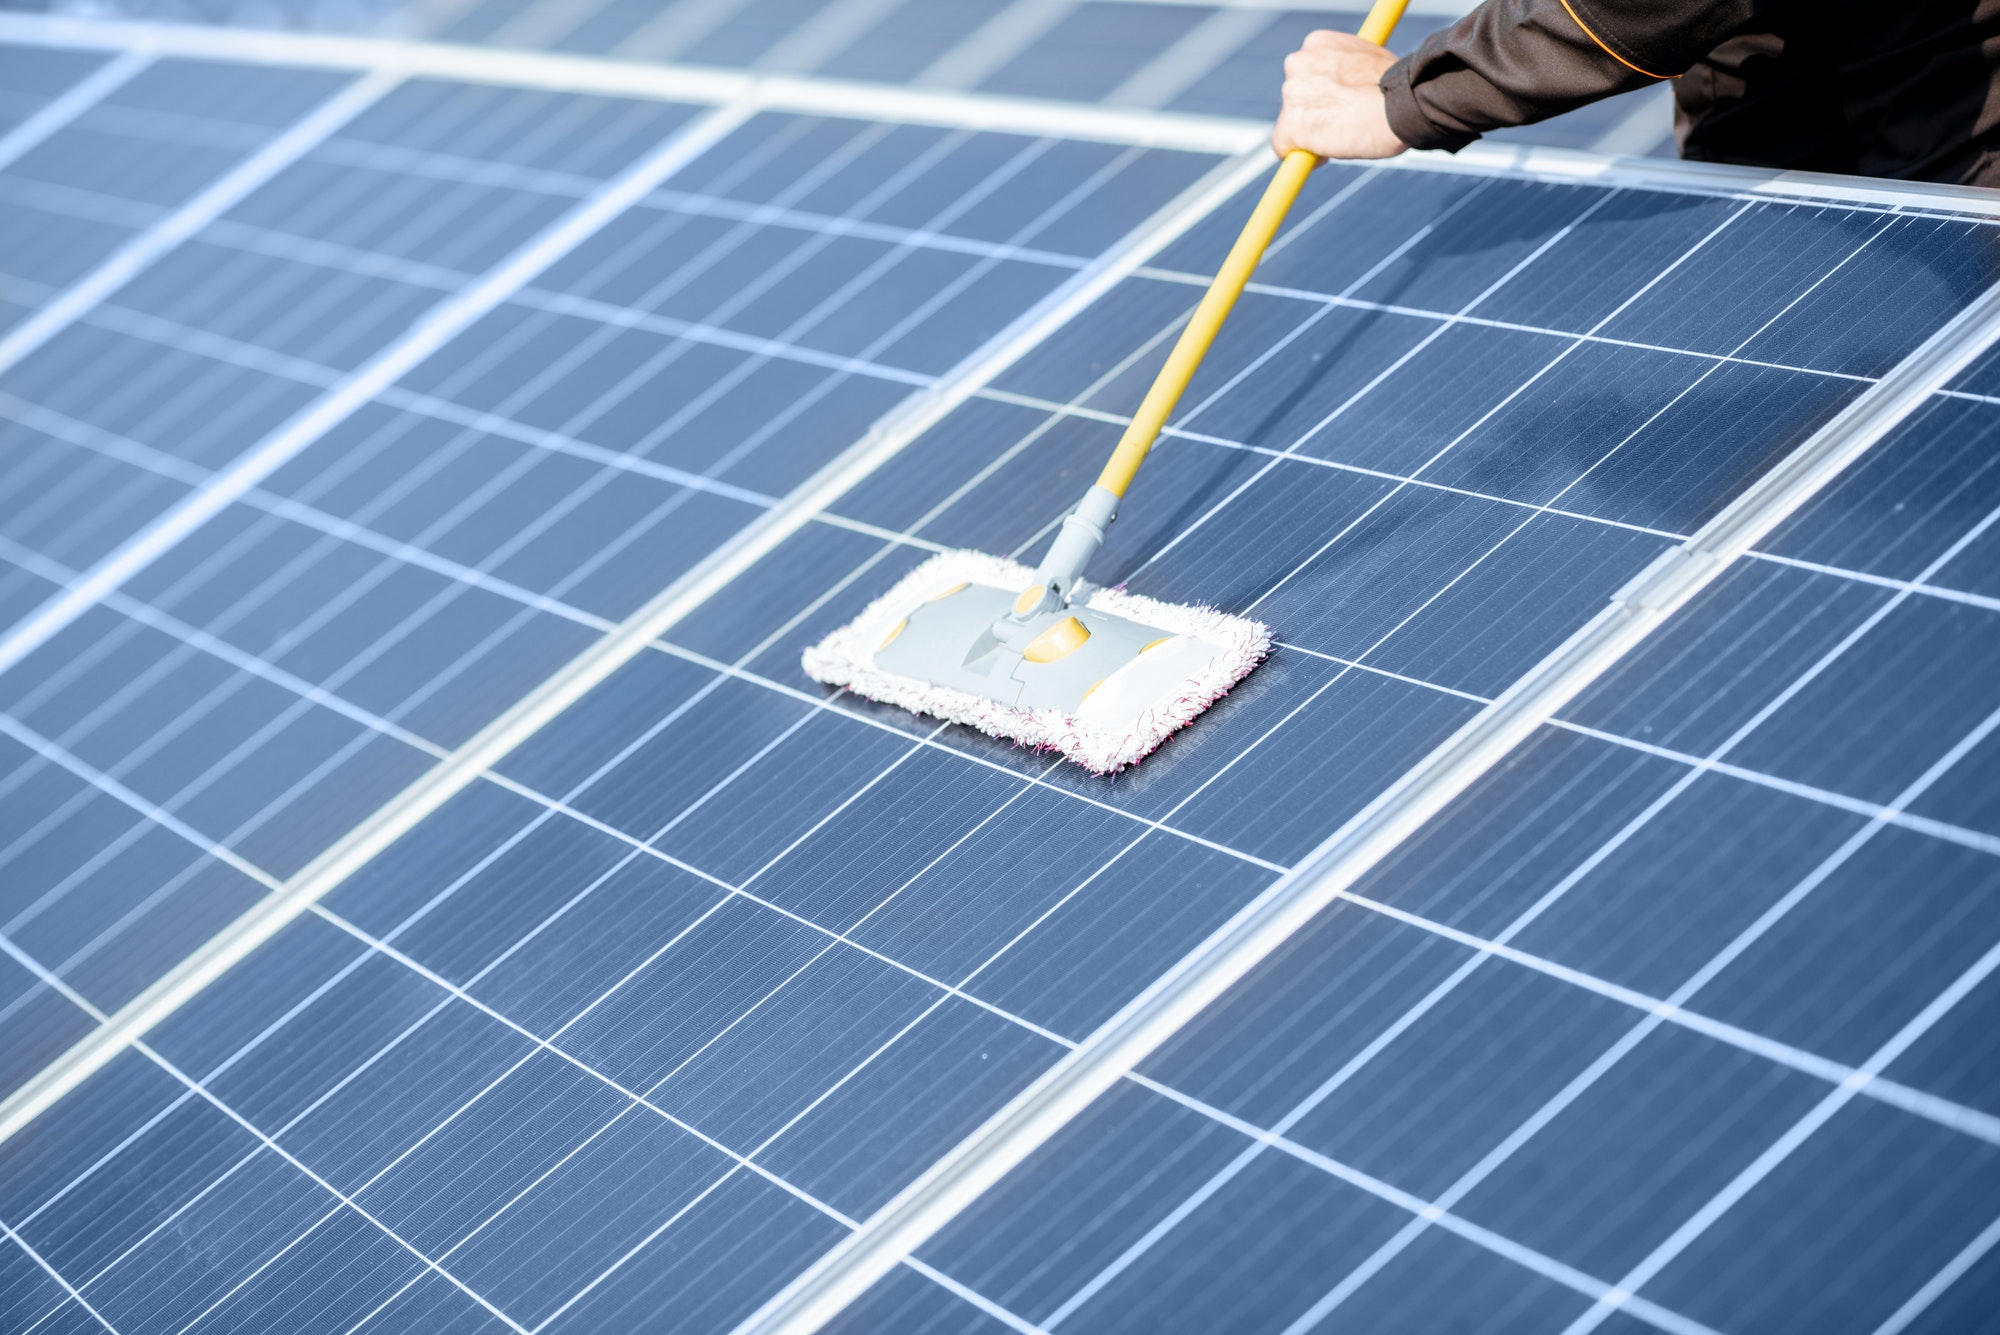 Workman cleaning solar panels